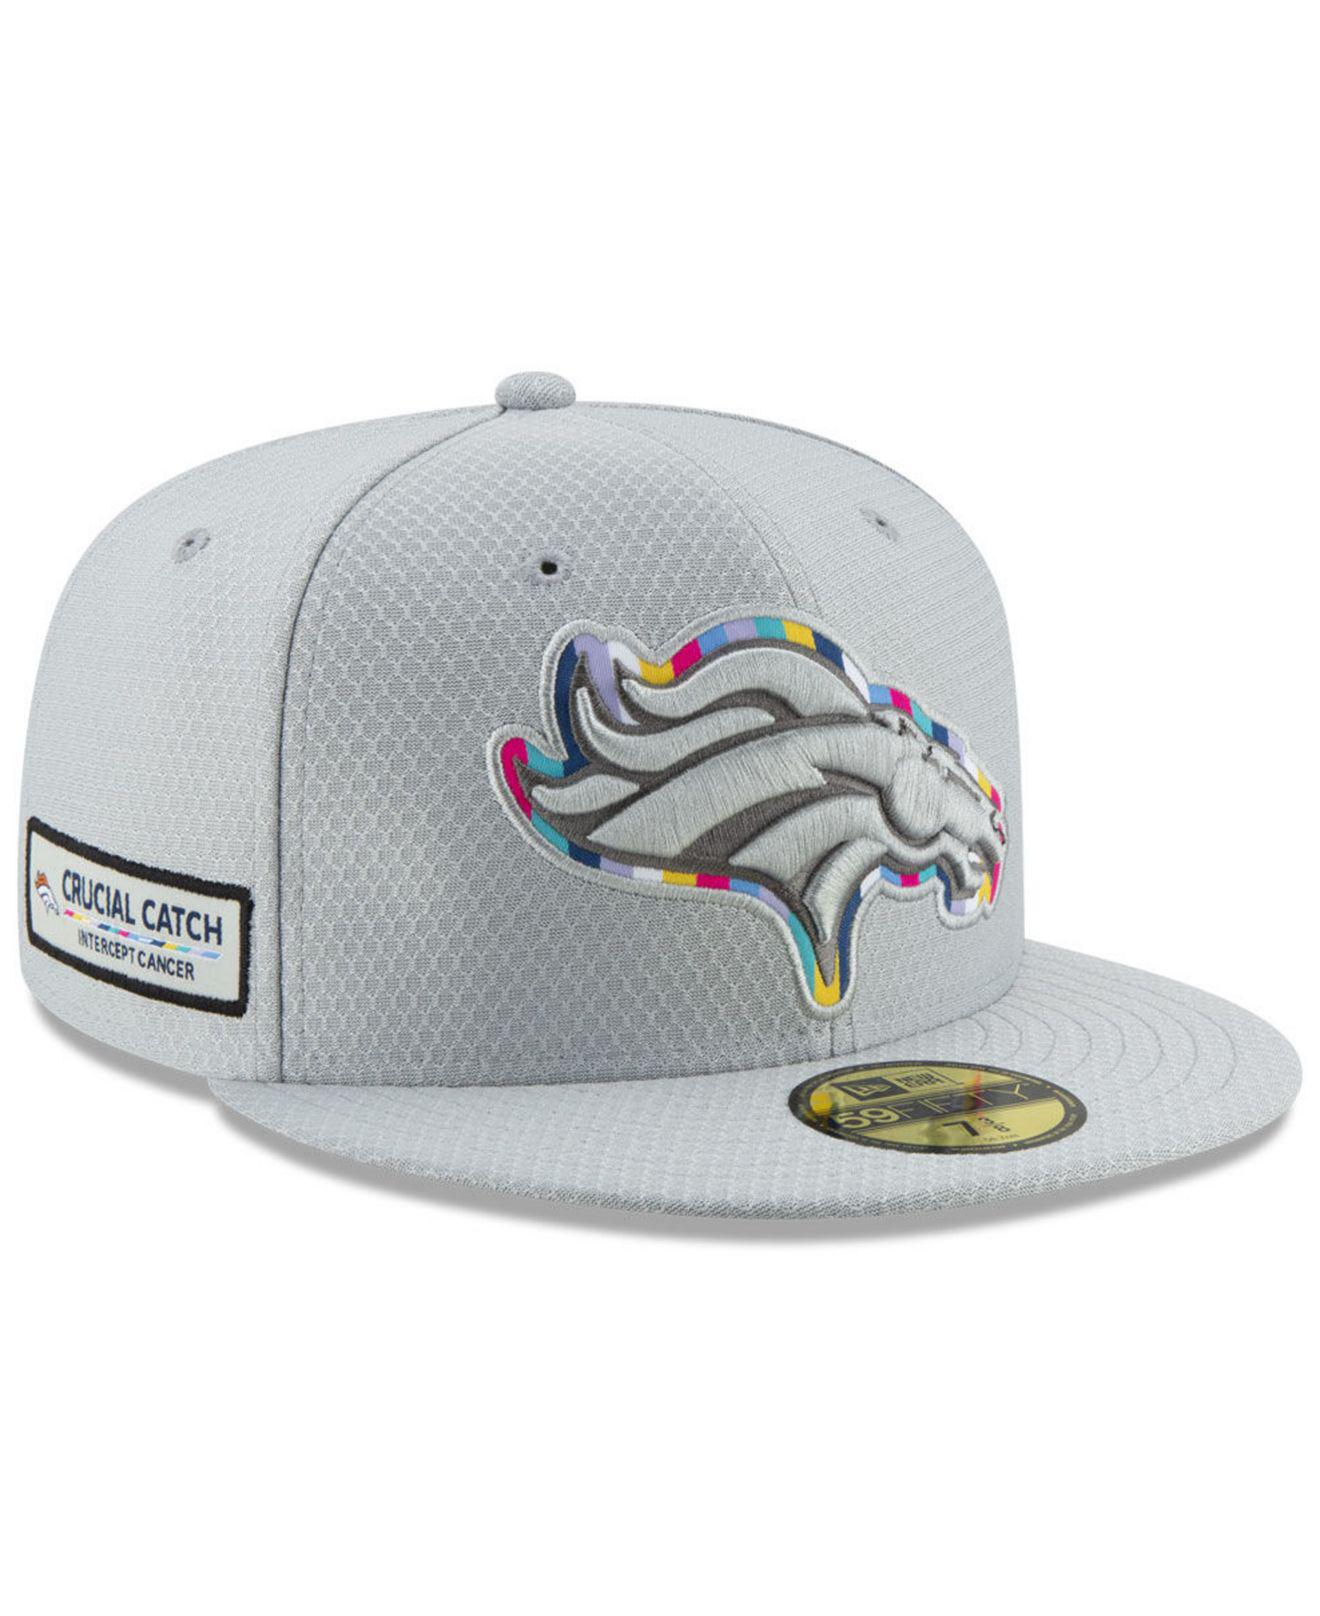 Lyst - KTZ Denver Broncos Crucial Catch 59fifty Fitted Cap in Gray ... d4eefcd9594b